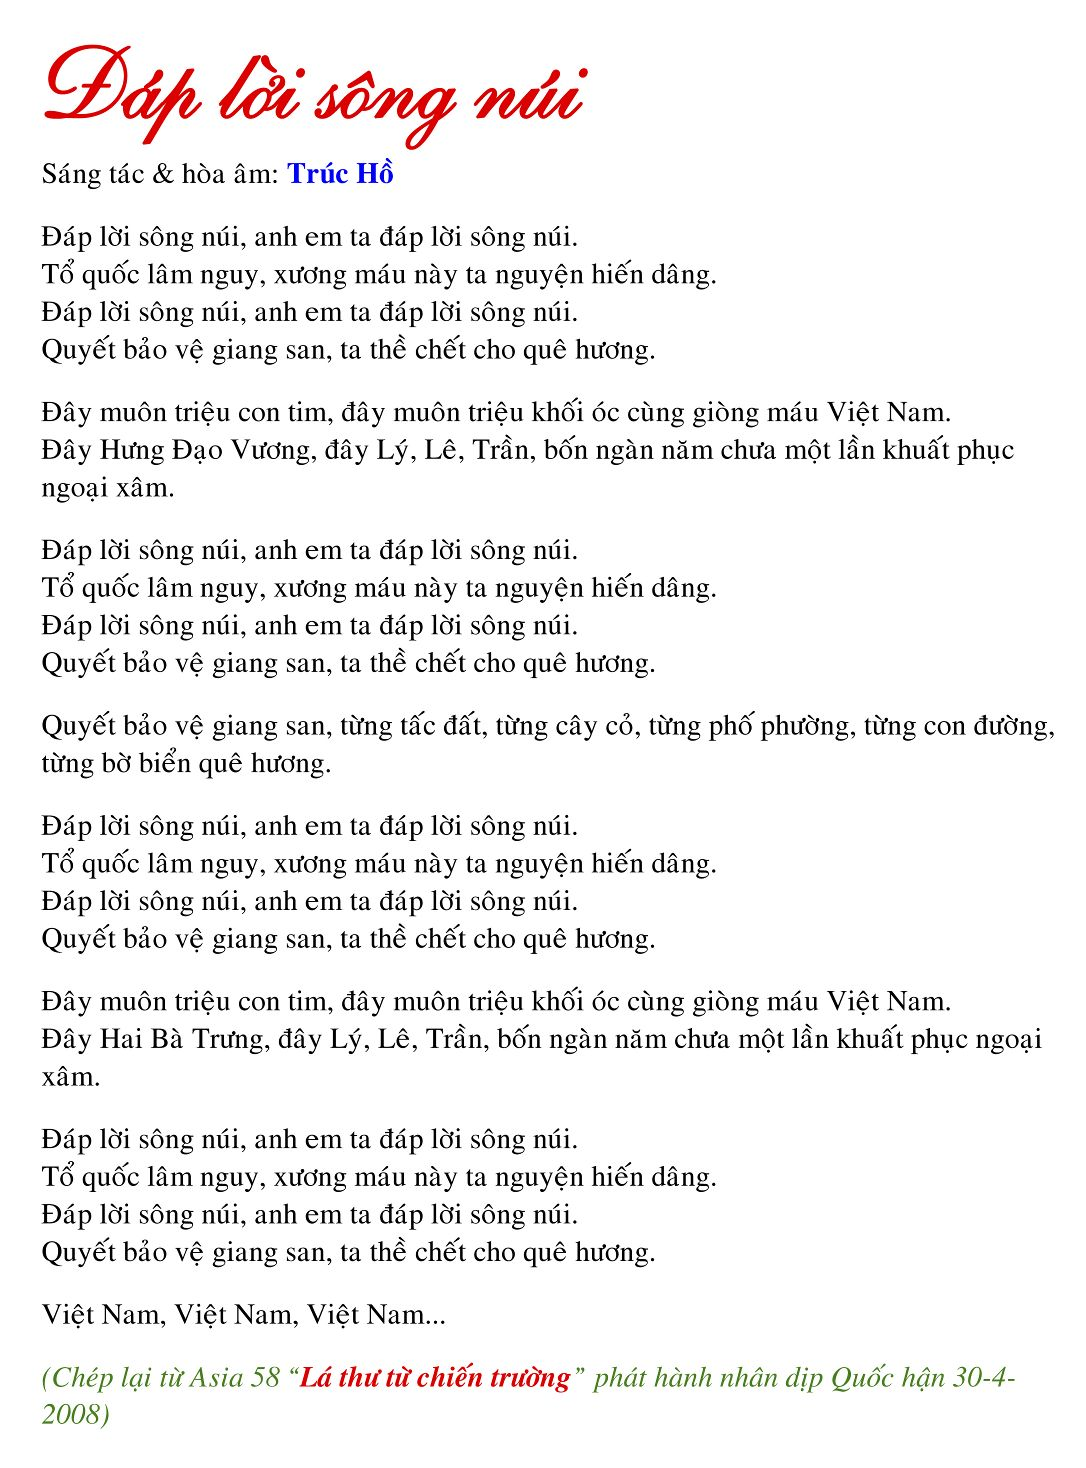 Dap loi song nui [MKV] [Dolby AC3] [2 channels] [48000Hz stereo] [1536Kbps] Demonoid preview 0